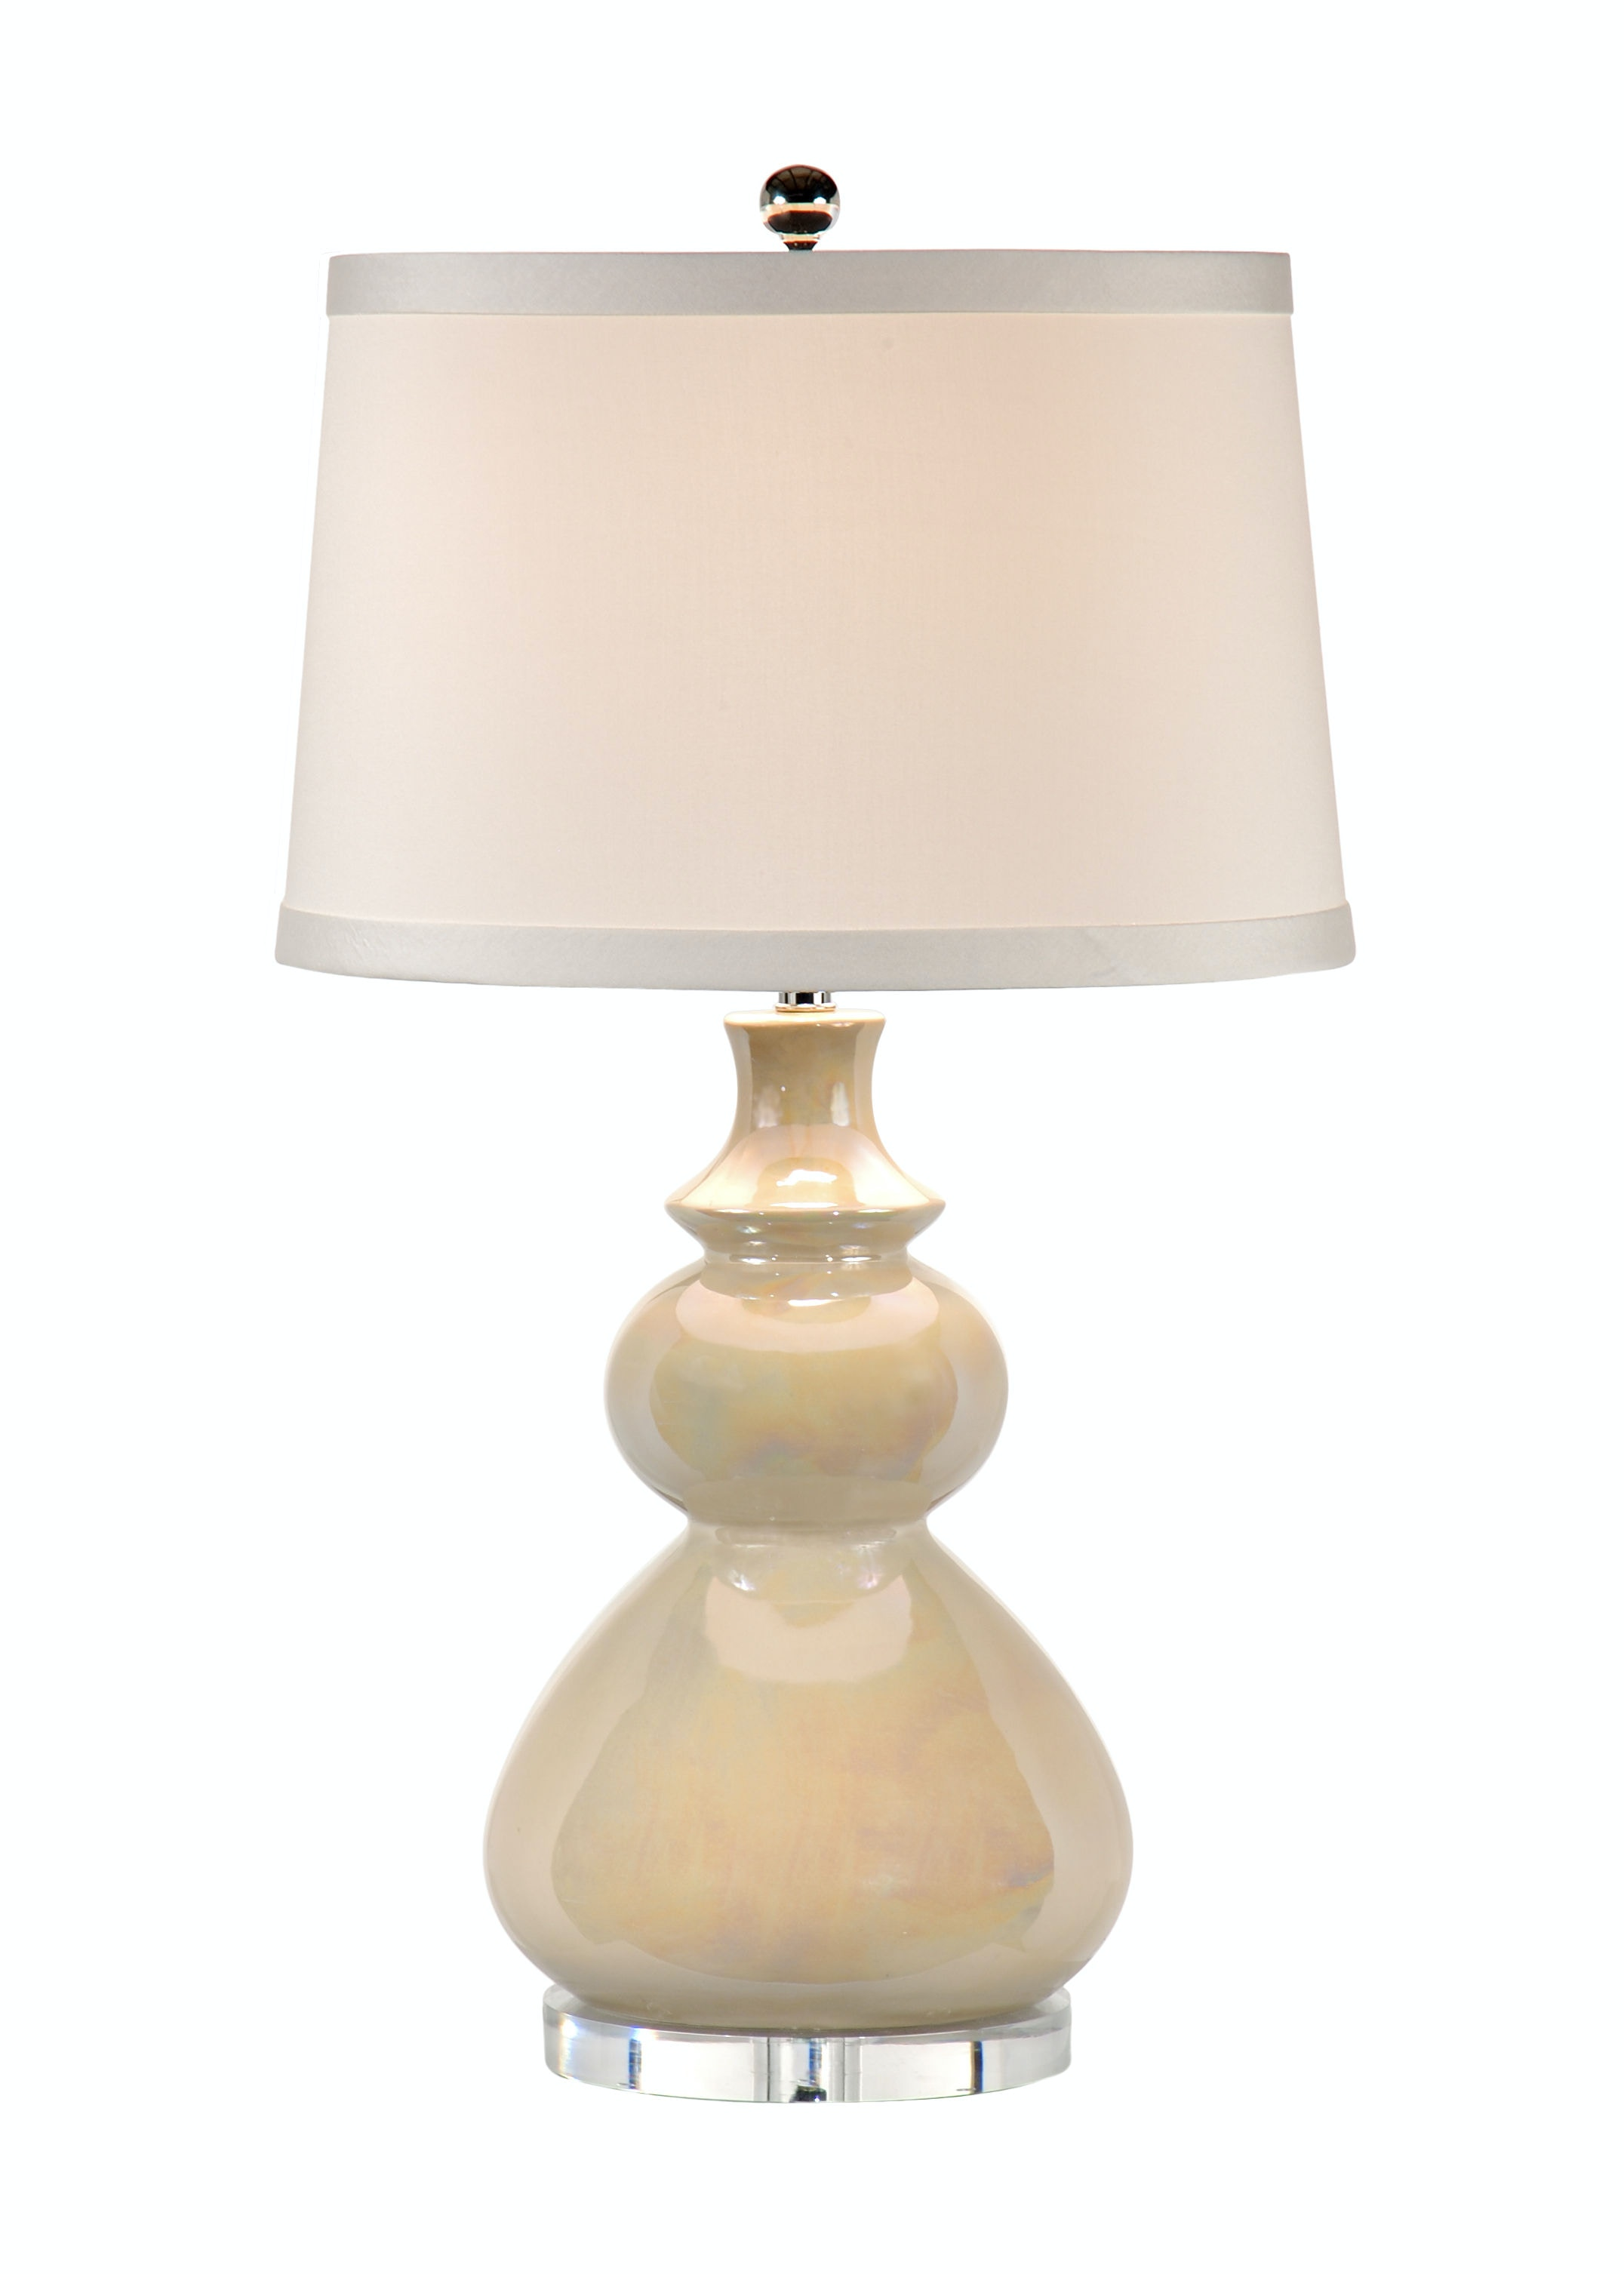 Finest Wildwood Lamps Furniture - Giorgi Brothers - South San Francisco, CA AA66